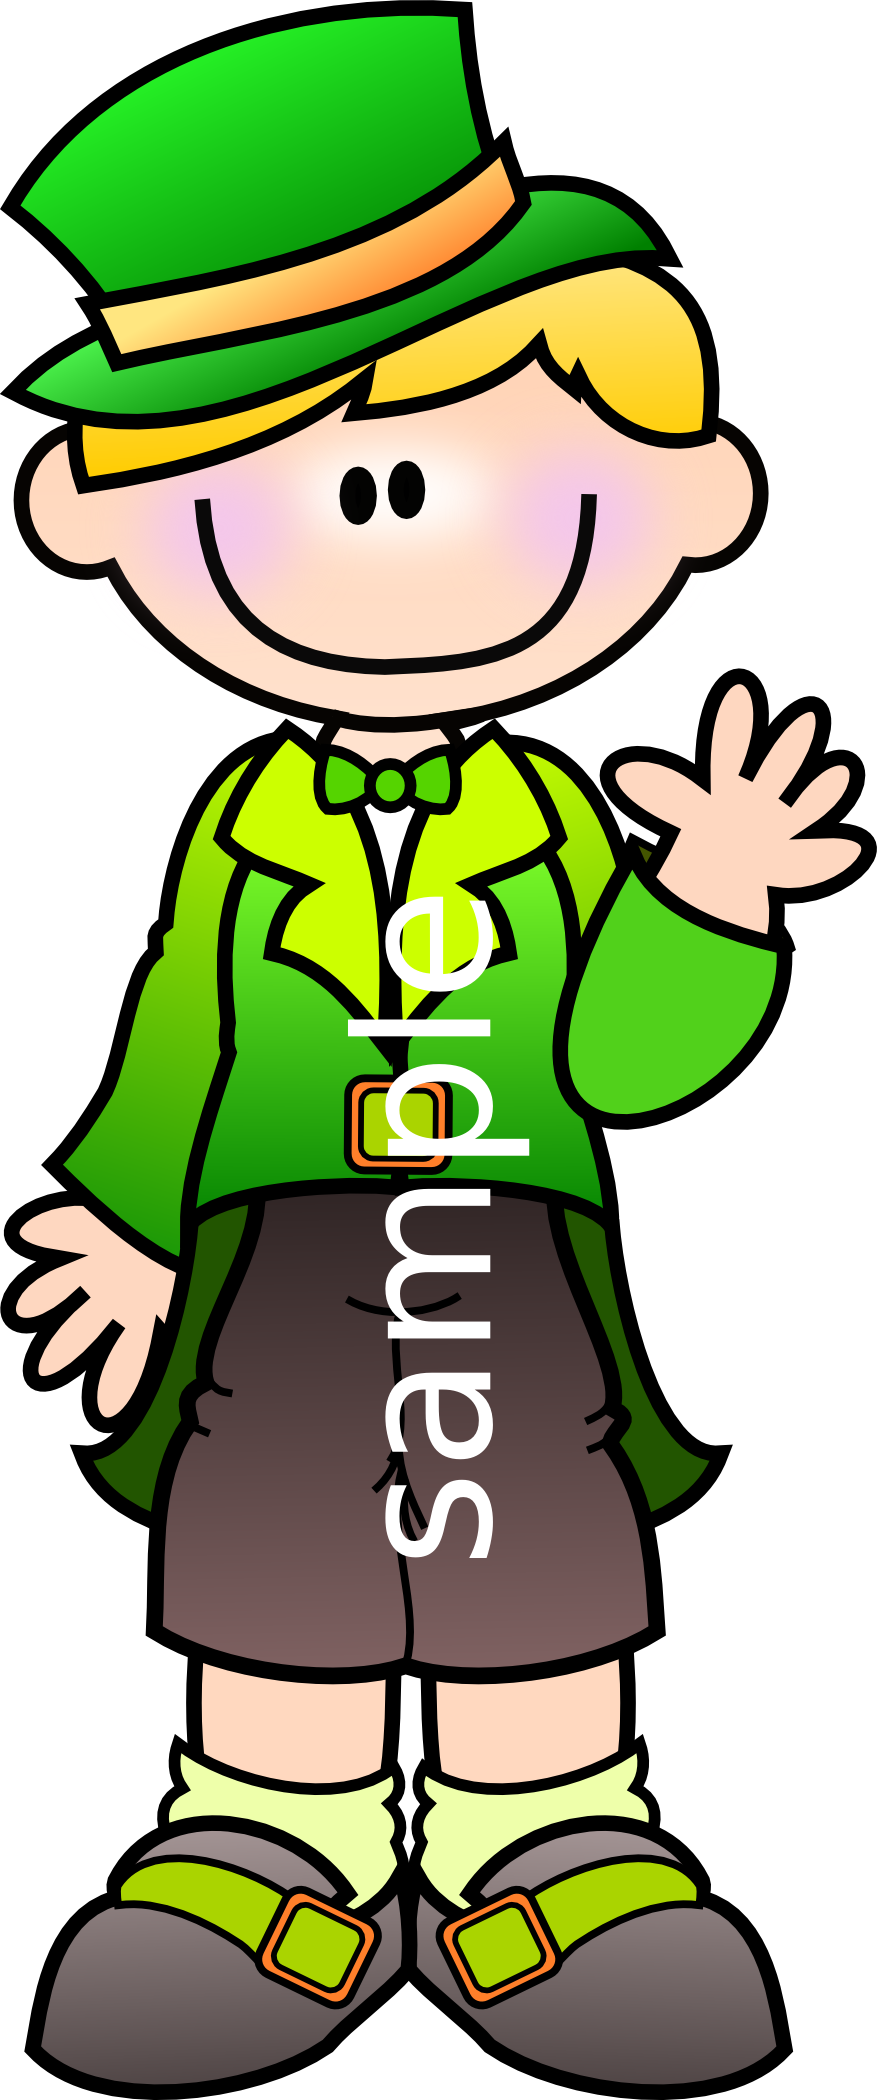 new st patrick s day collection available for web or print use rh za pinterest com free thistle girl clipart